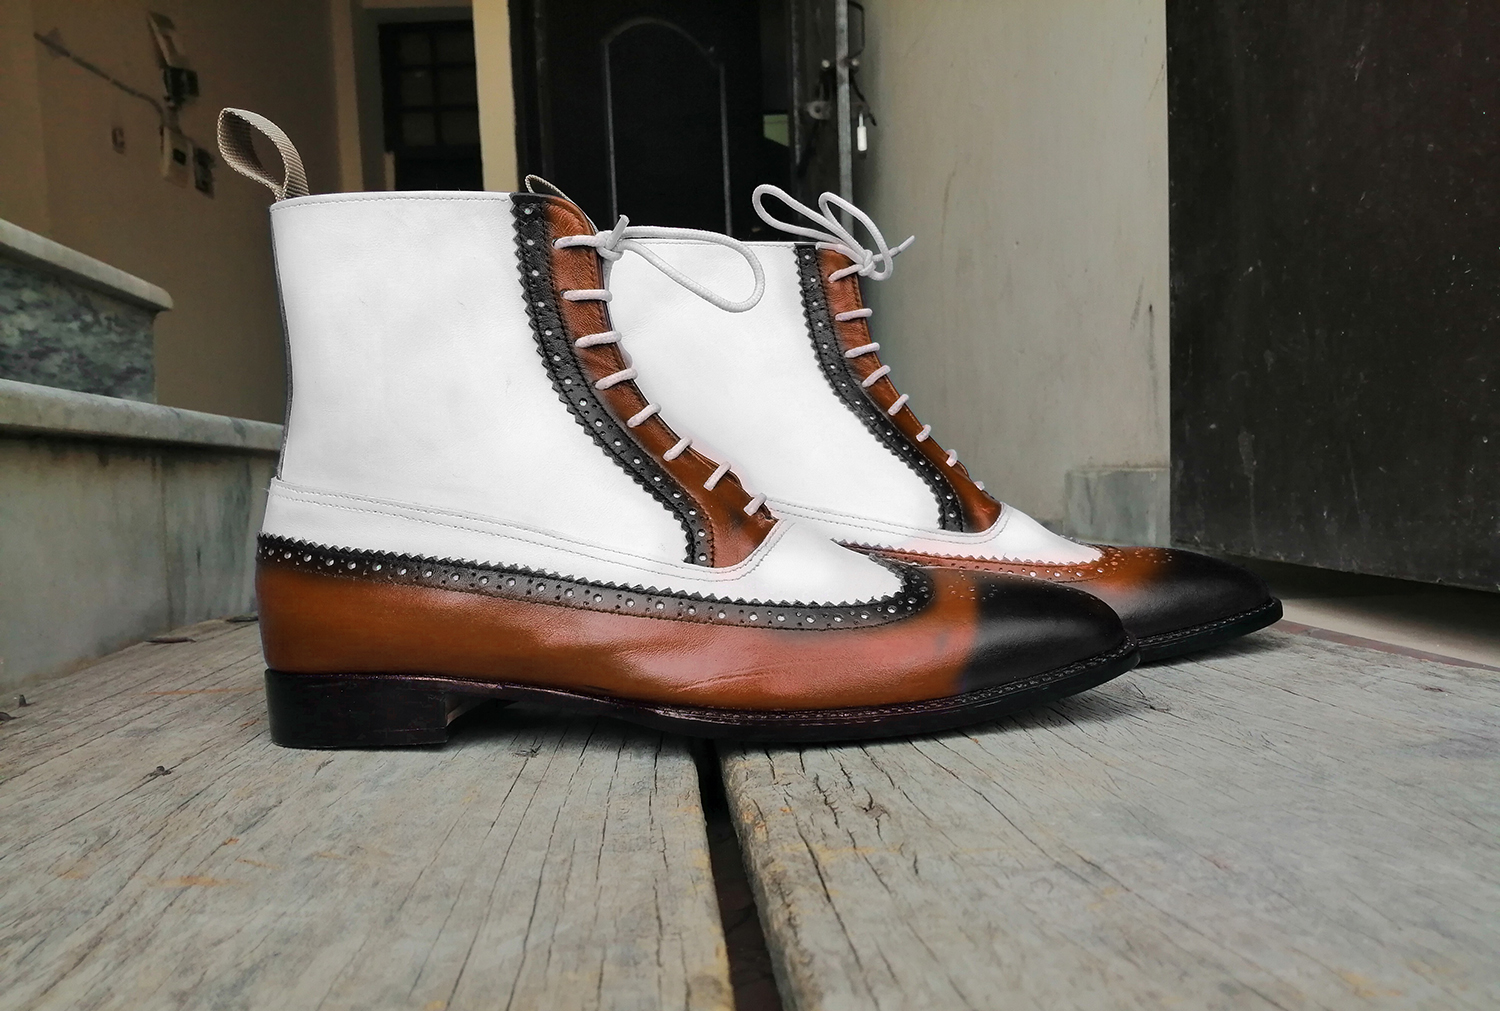 e8150301c43 New Men's Handmade Brown Black White Ankle High Leather Lace Up Wing Tip  Brogue Boot